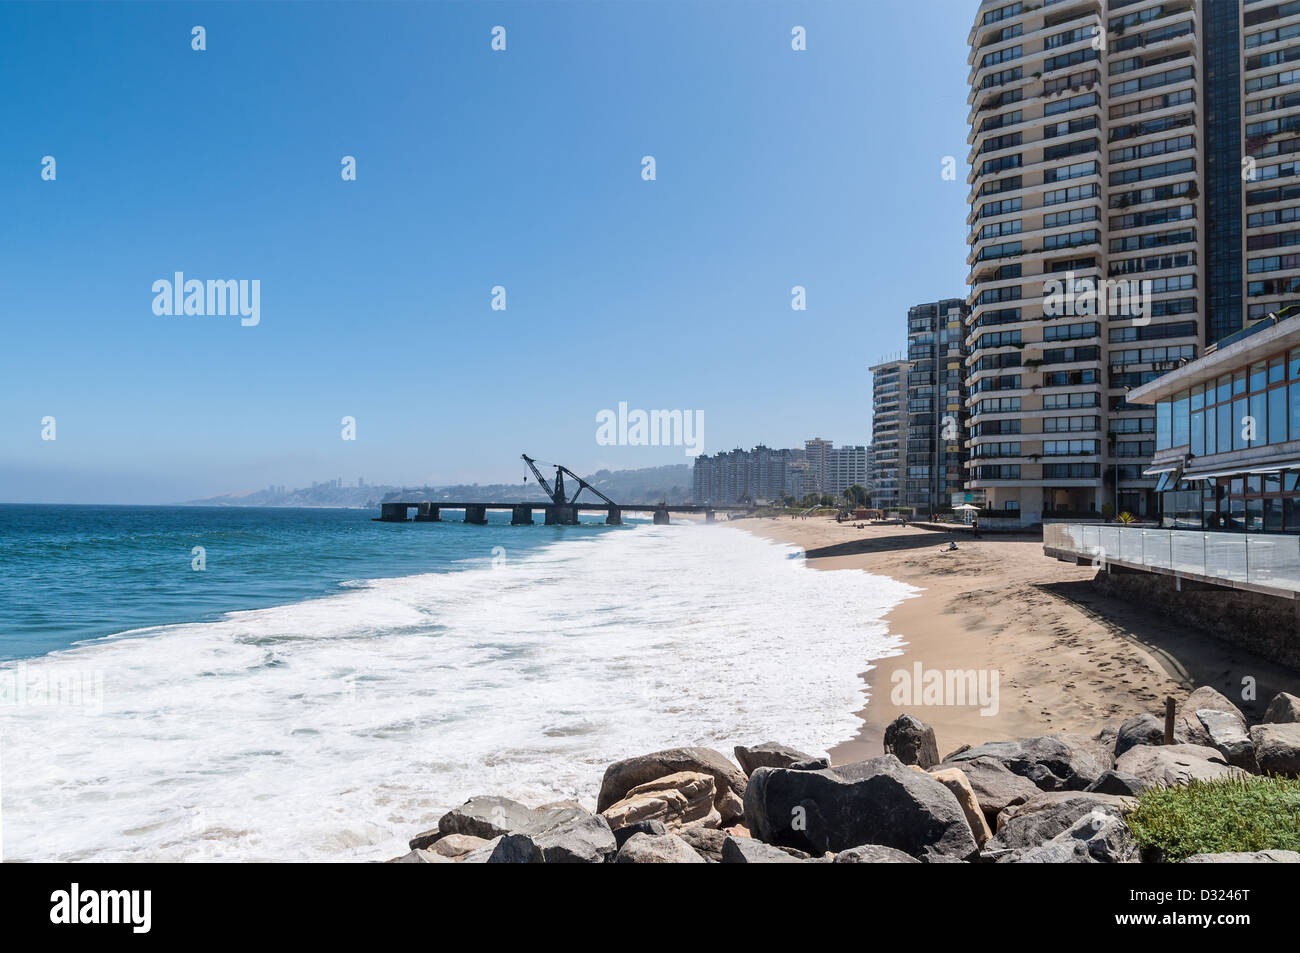 View on the beach of Vina del Mar in Chile. - Stock Image